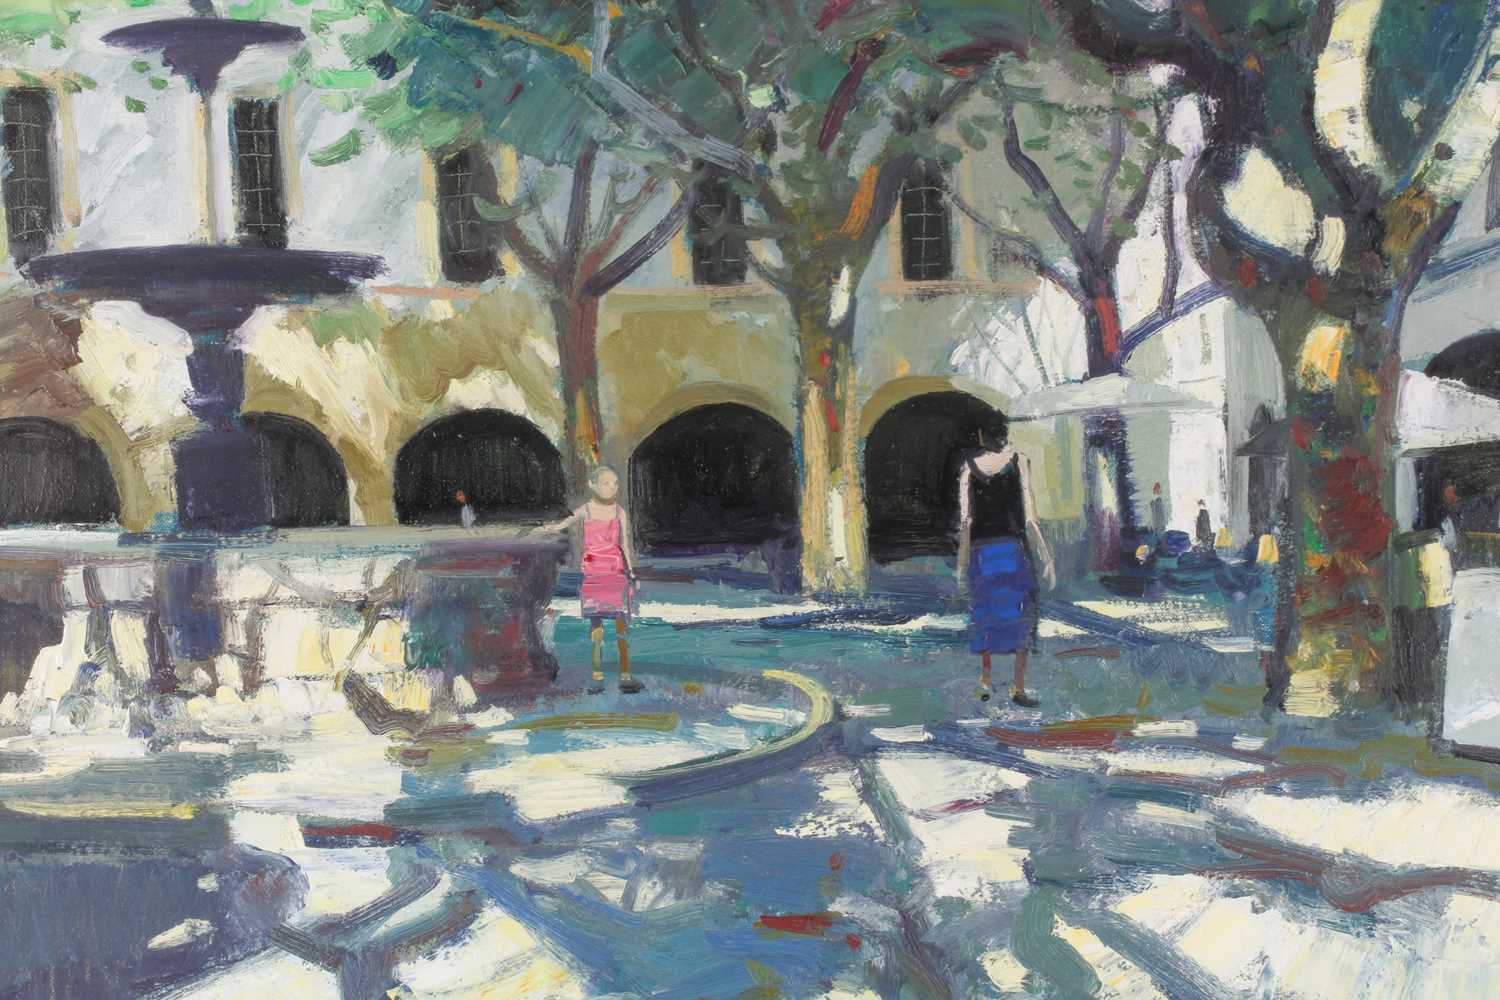 John Kingsley, RSW, PAI (Scottish), Late afternoon, Uzes, oil on canvas, signed lower left, 60 cm - Image 3 of 5